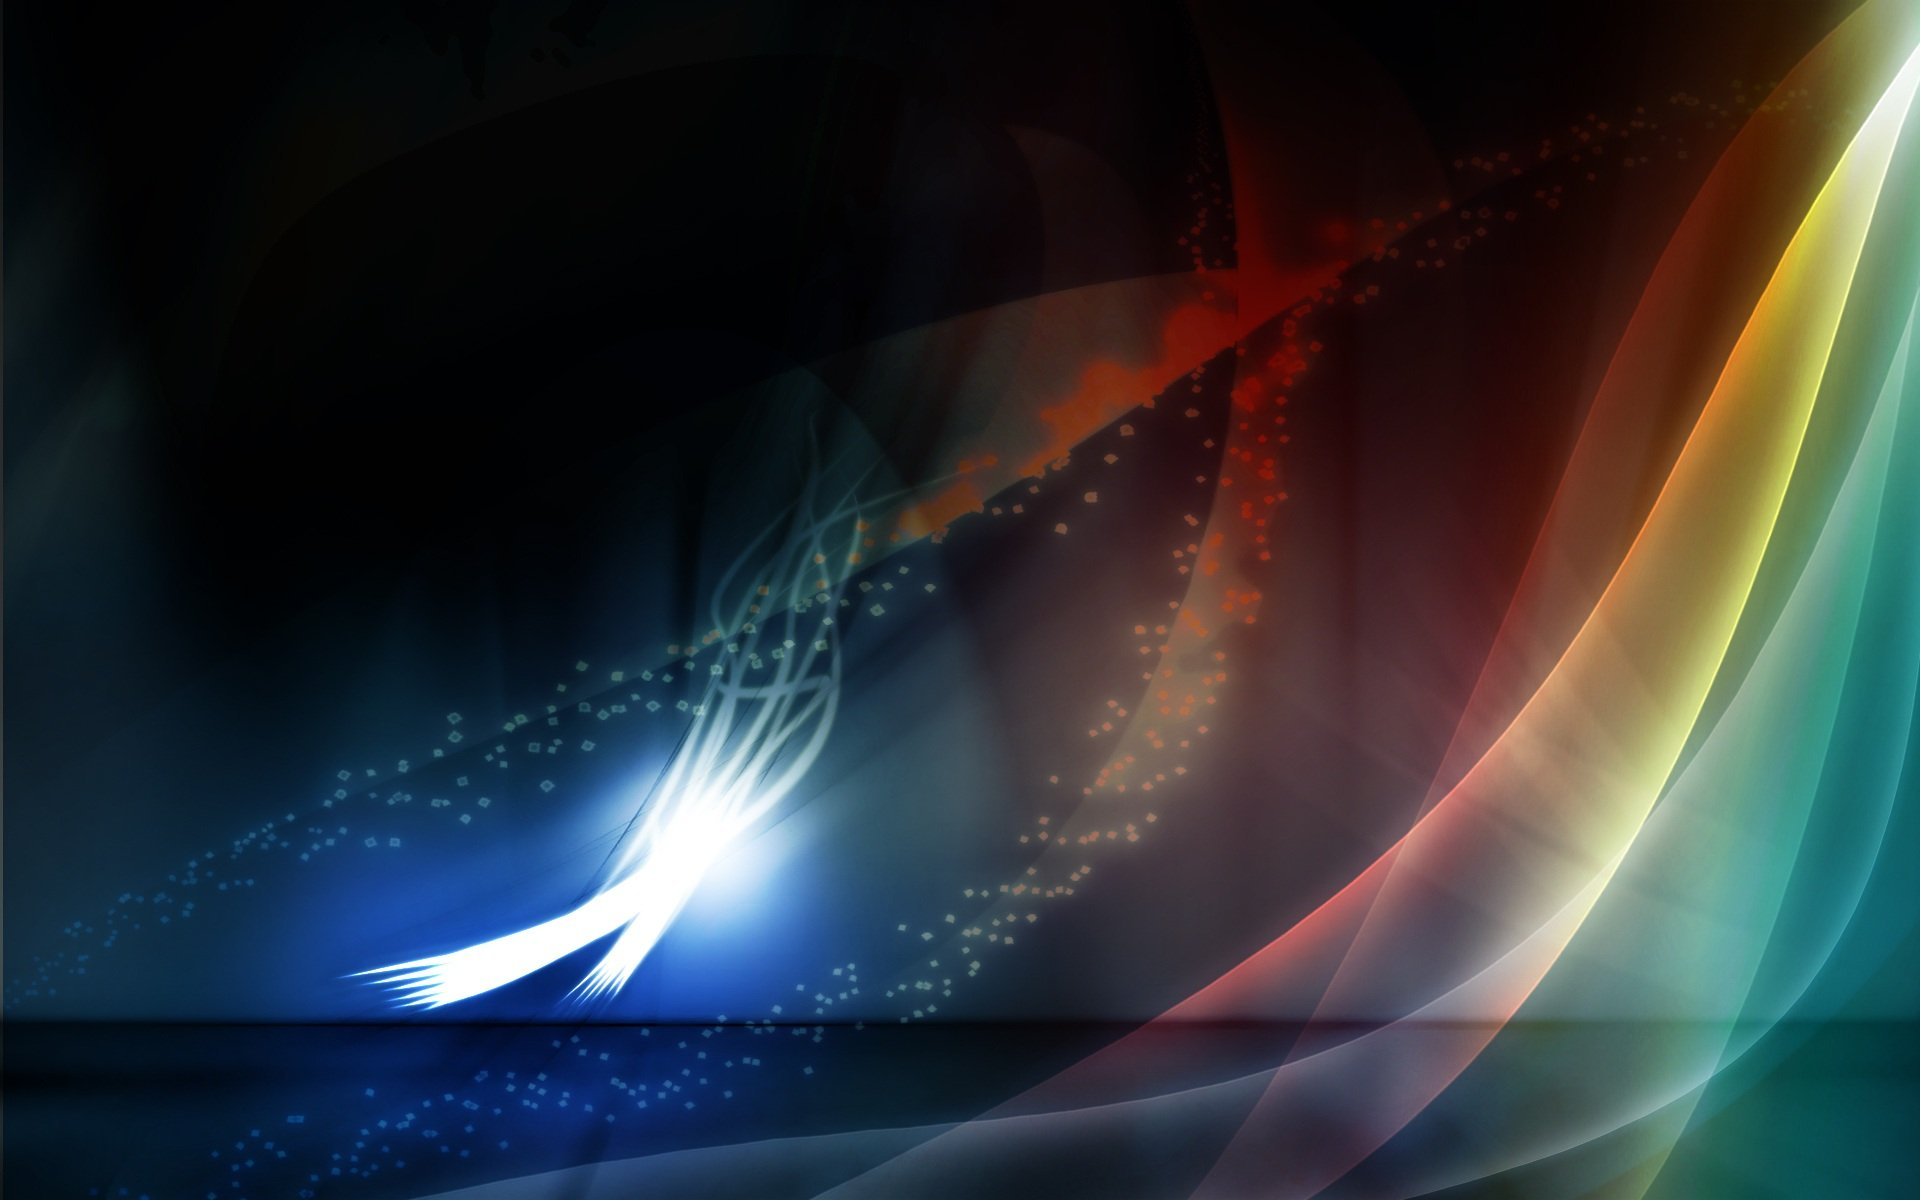 Hd wallpaper wide - Widescreen Abstract Wallpapers Hd Wallpapers